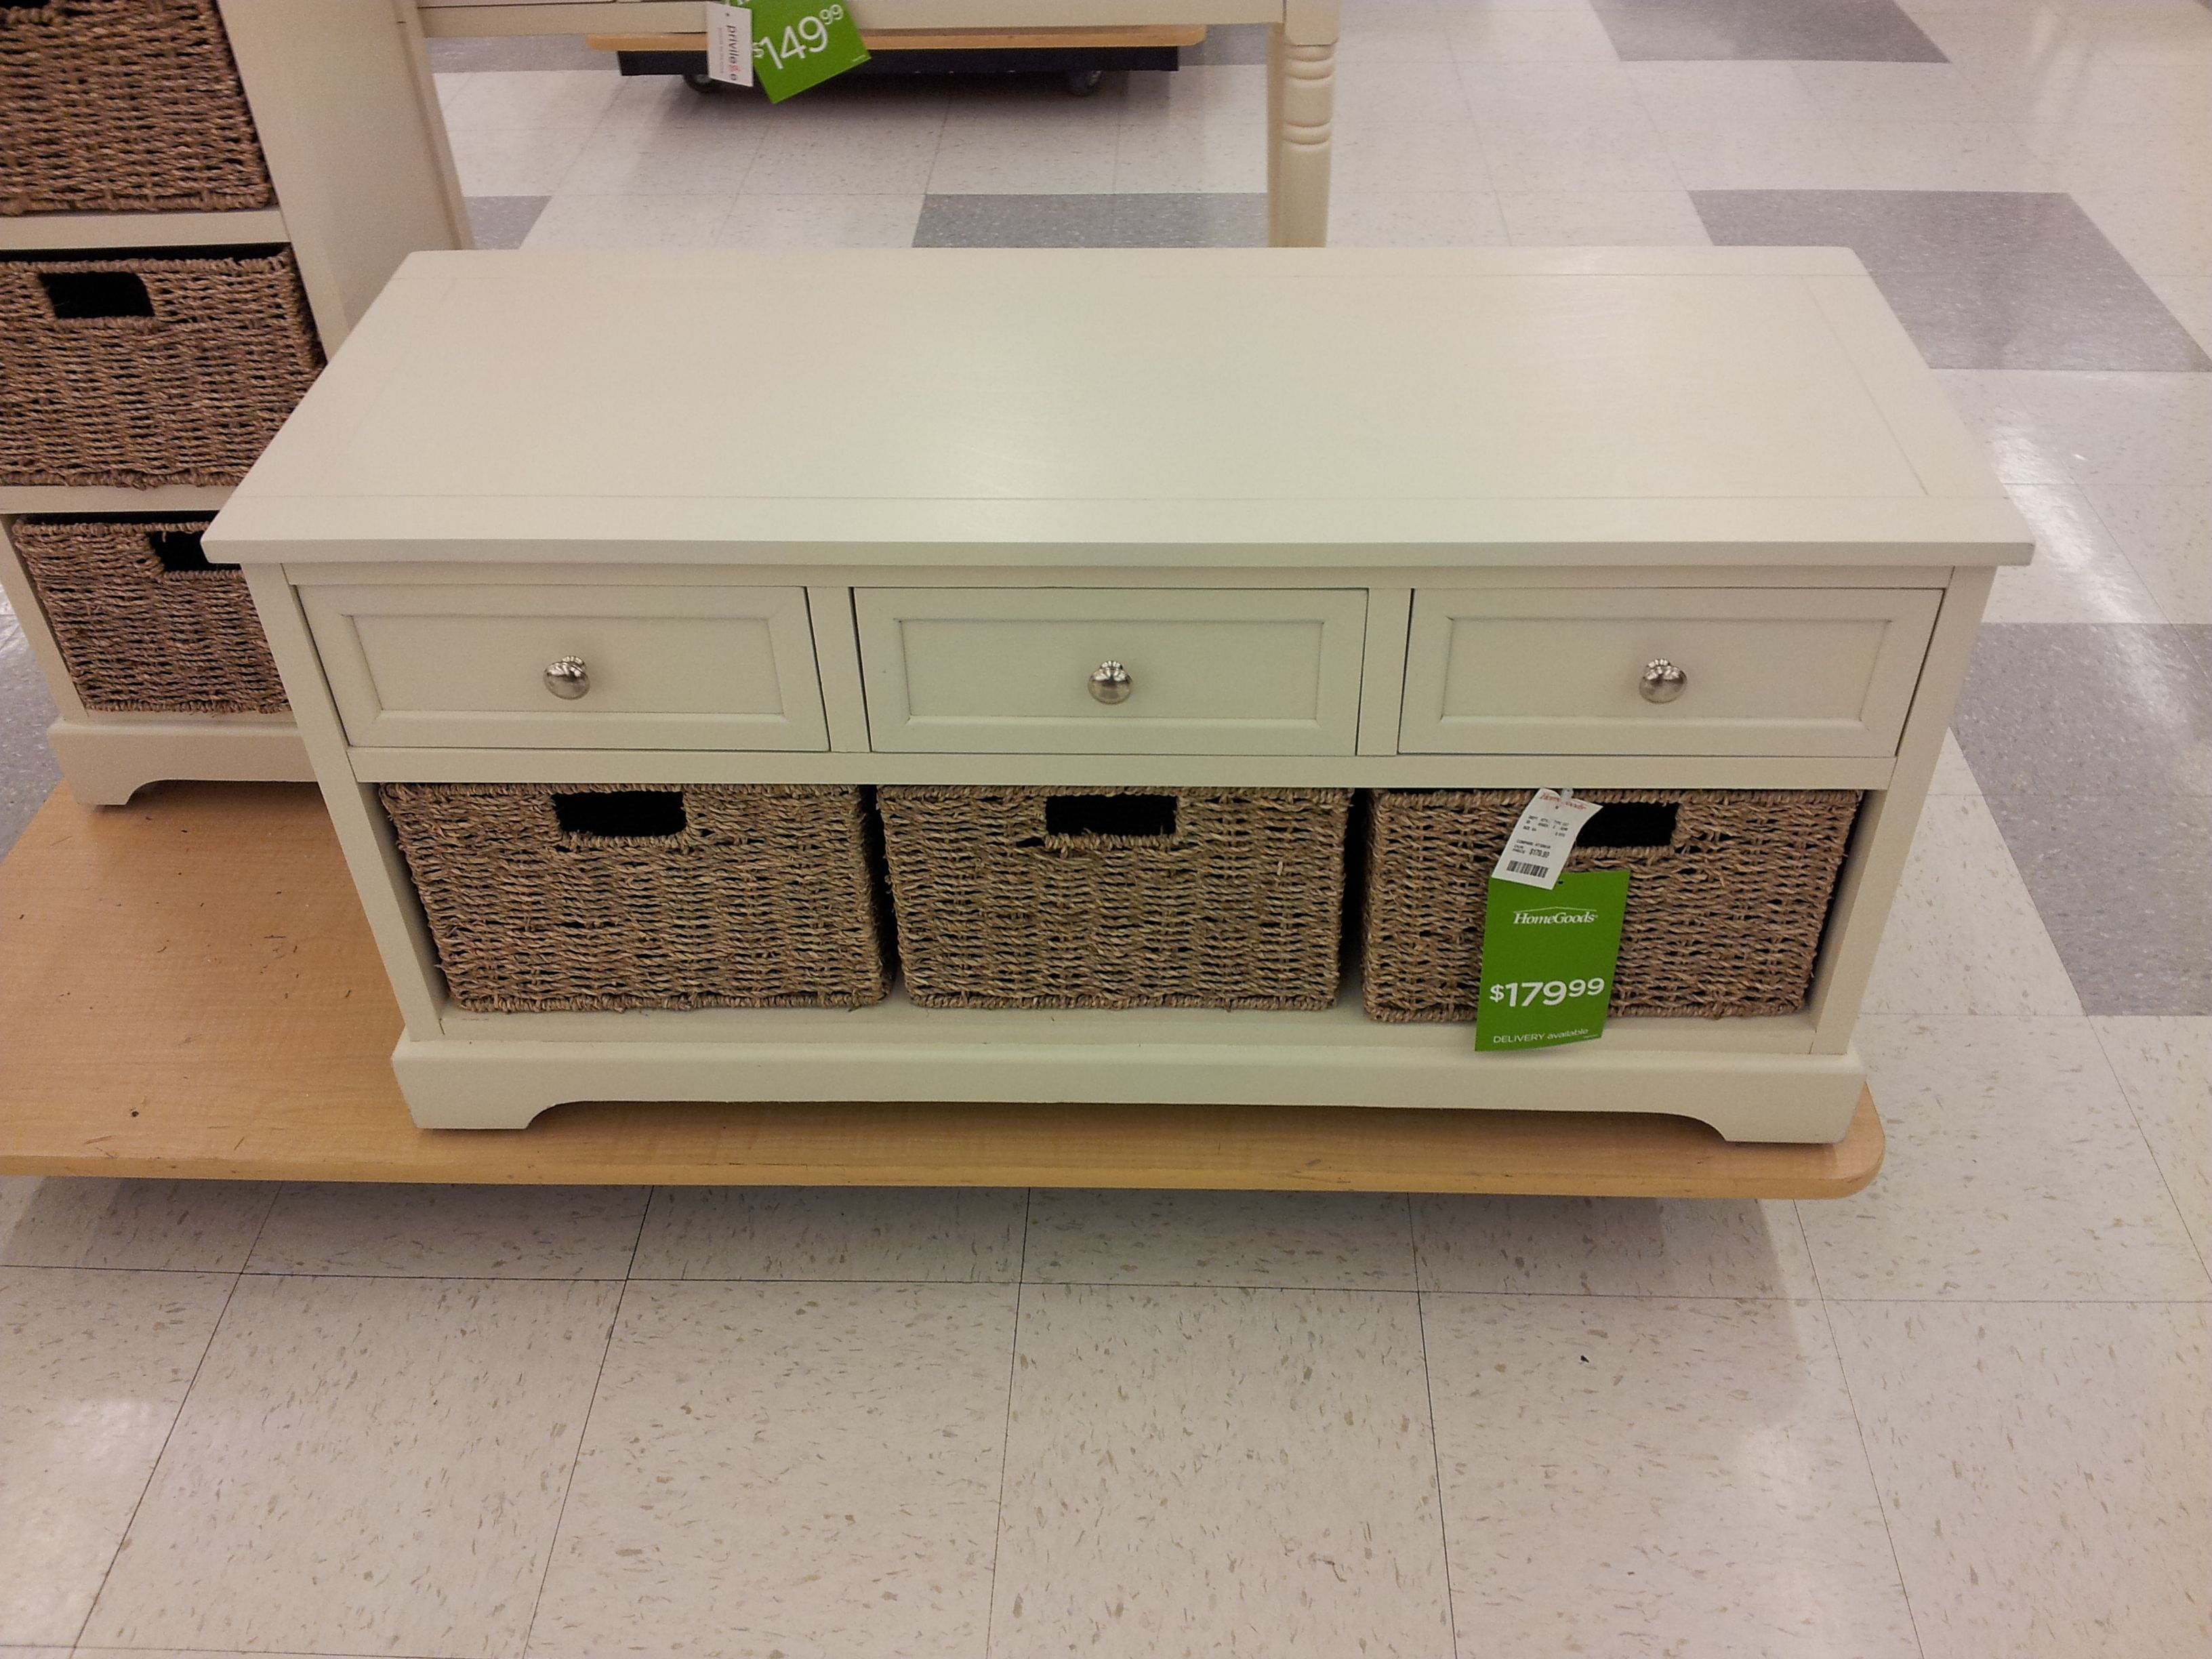 Superbe Portrayal Of TJ Maxx Furniture: Best Selection To Your Home Interior